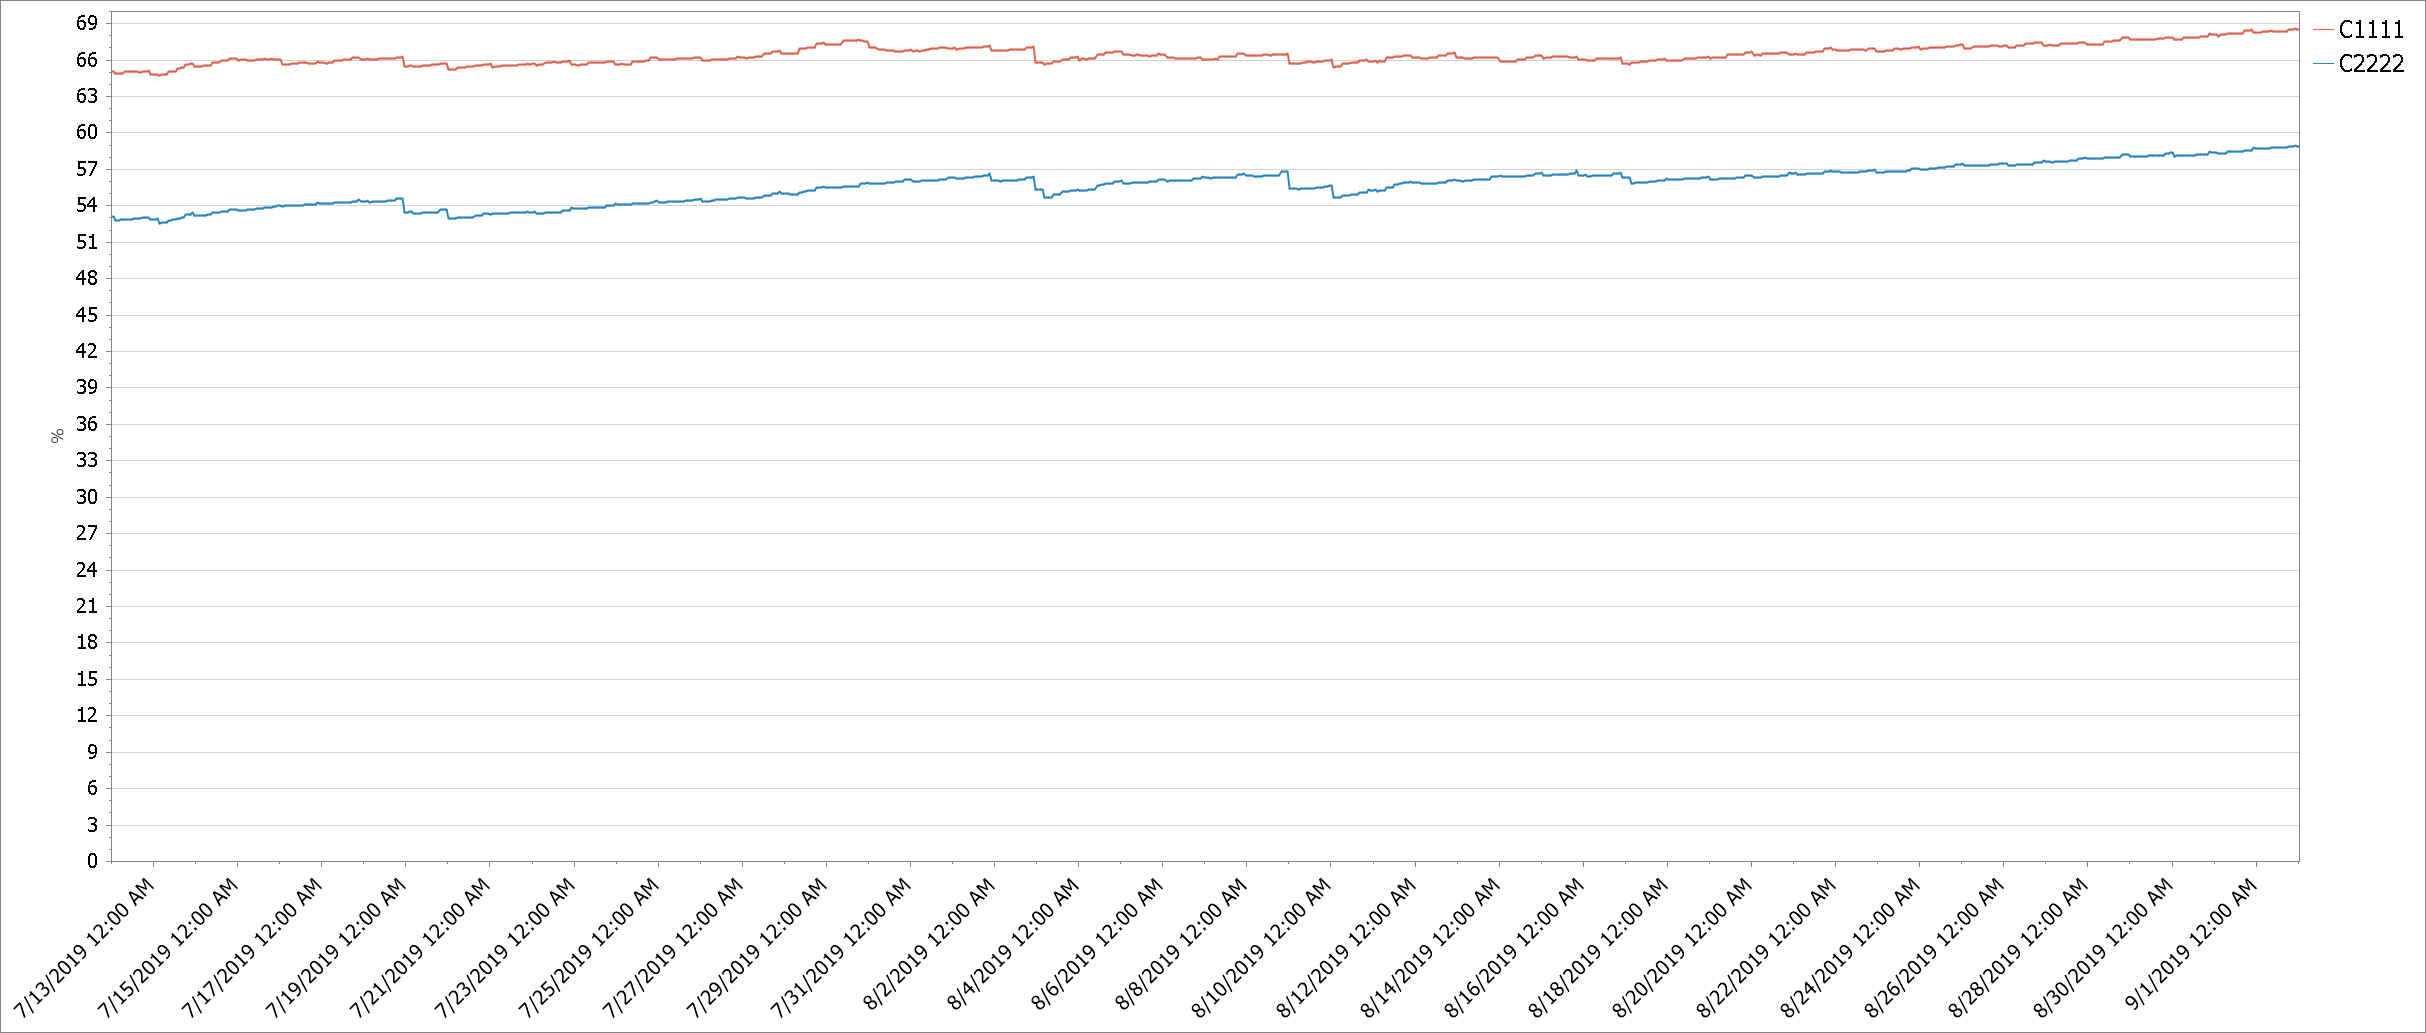 Unbalanced workloads causing one grid's cache to fill before the other.